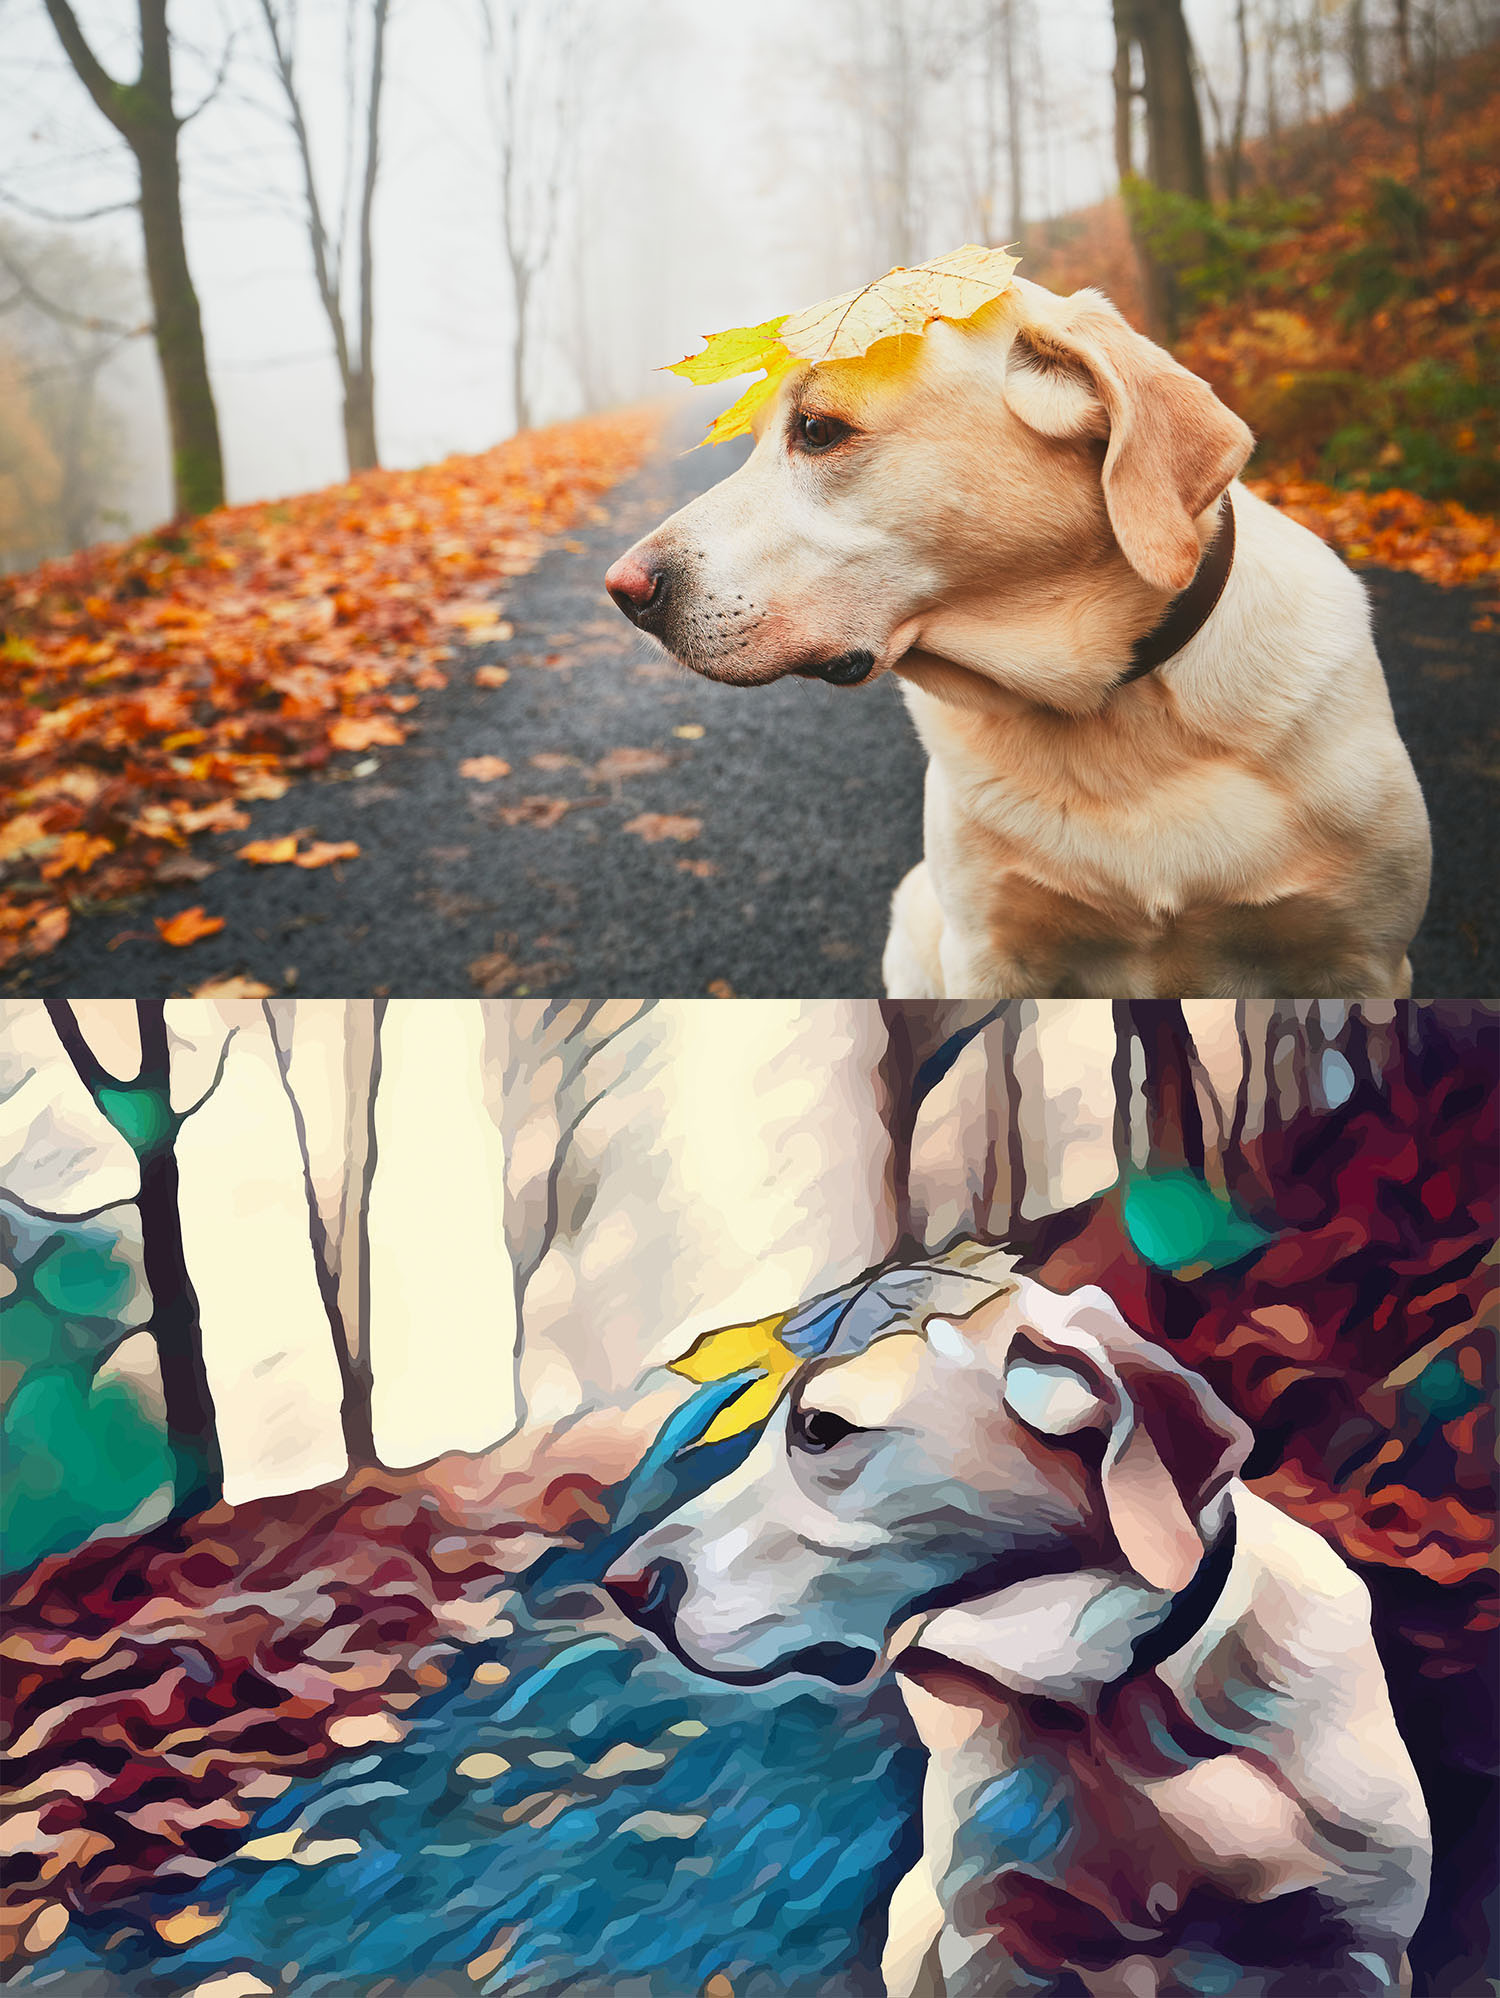 Before and after stylized image of a dog in the woods with a leaf on its head